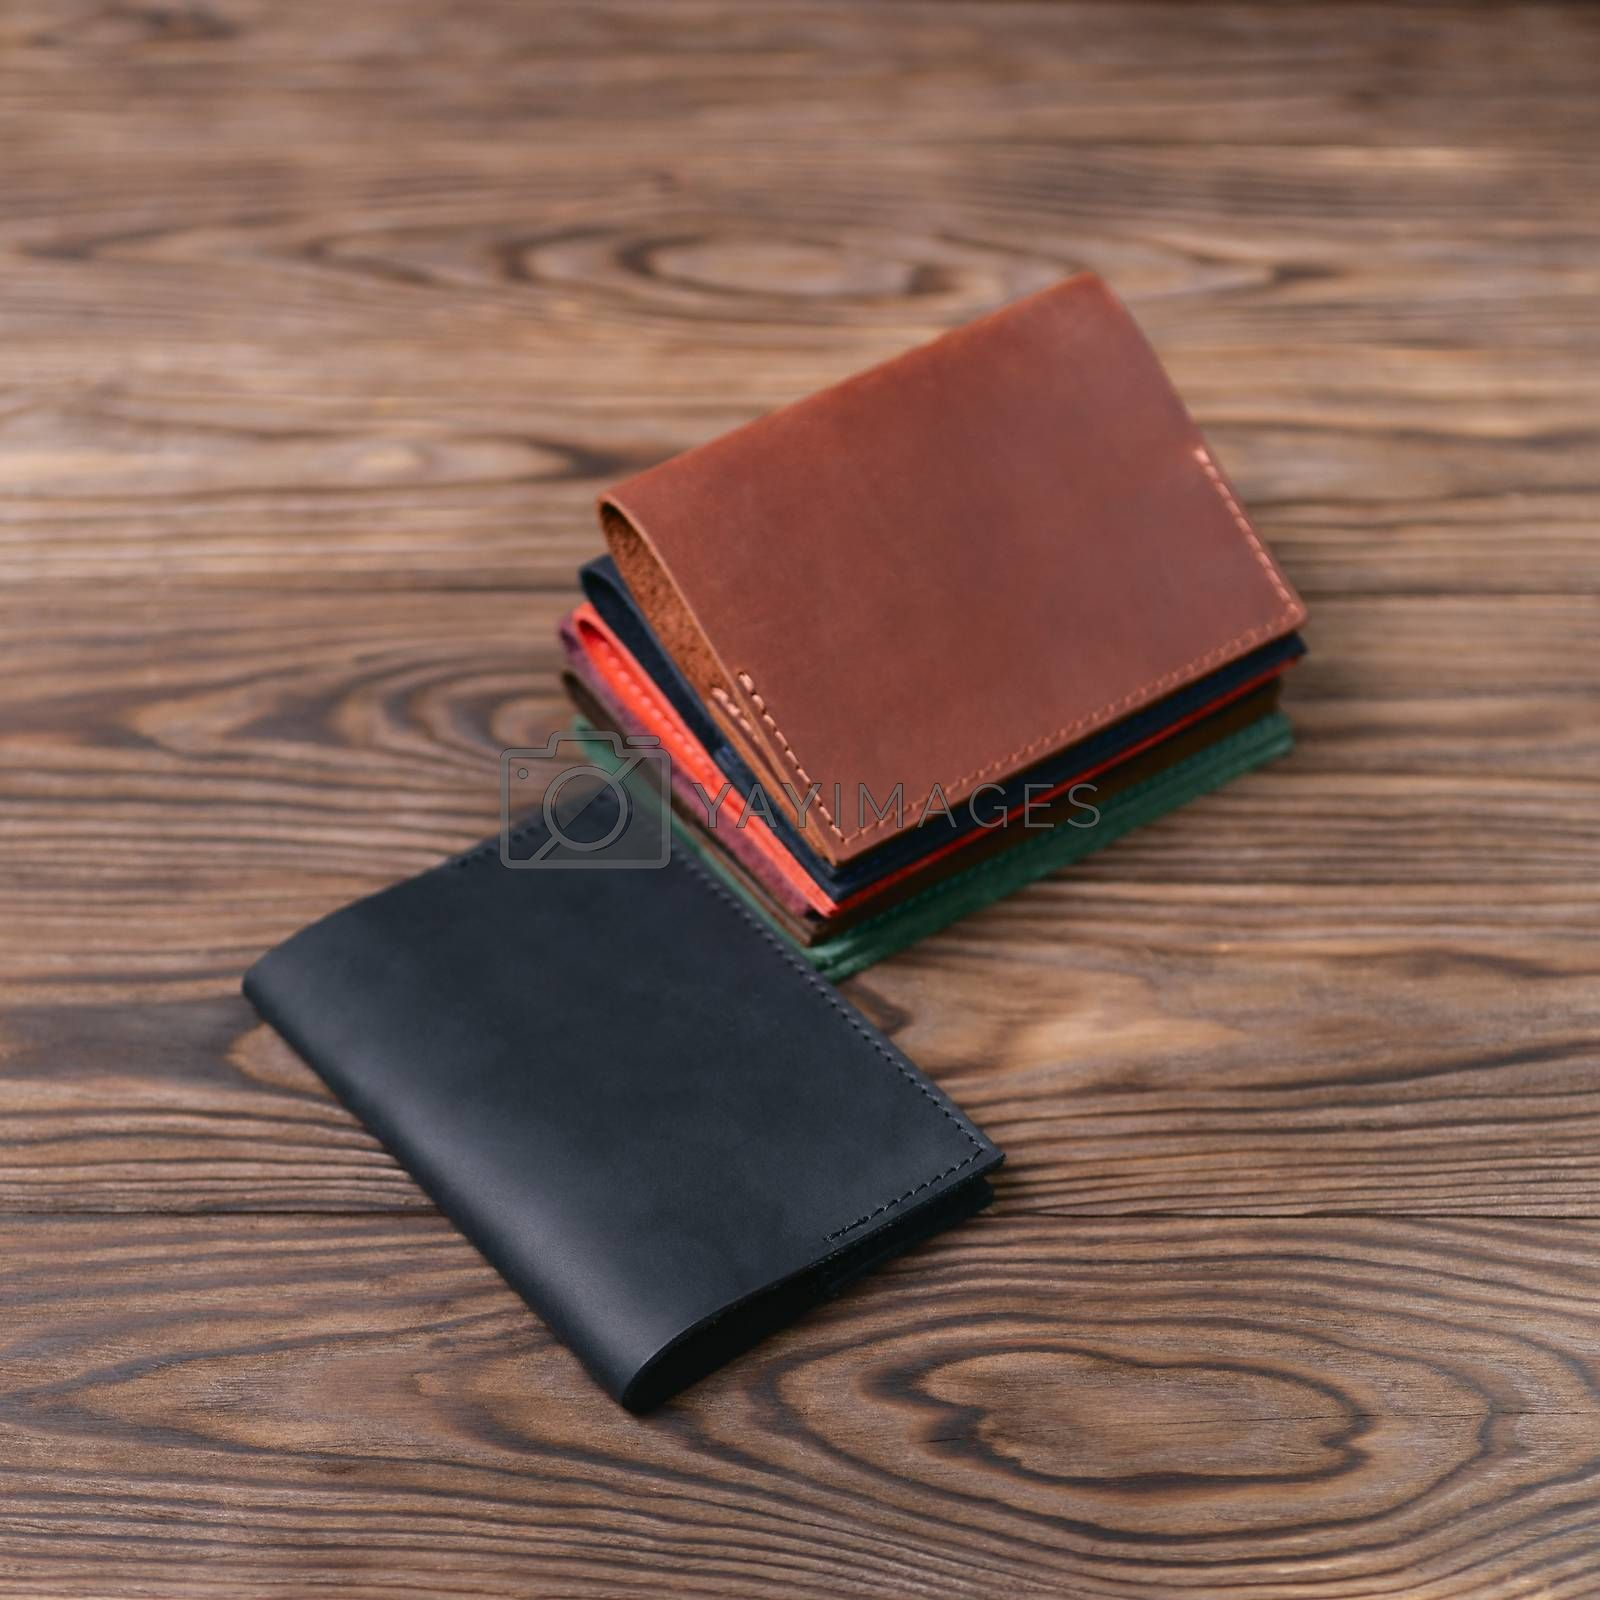 Six handmade leather passport covers on wooden textured background. Stock photo of luxury accessories. by alexsdriver